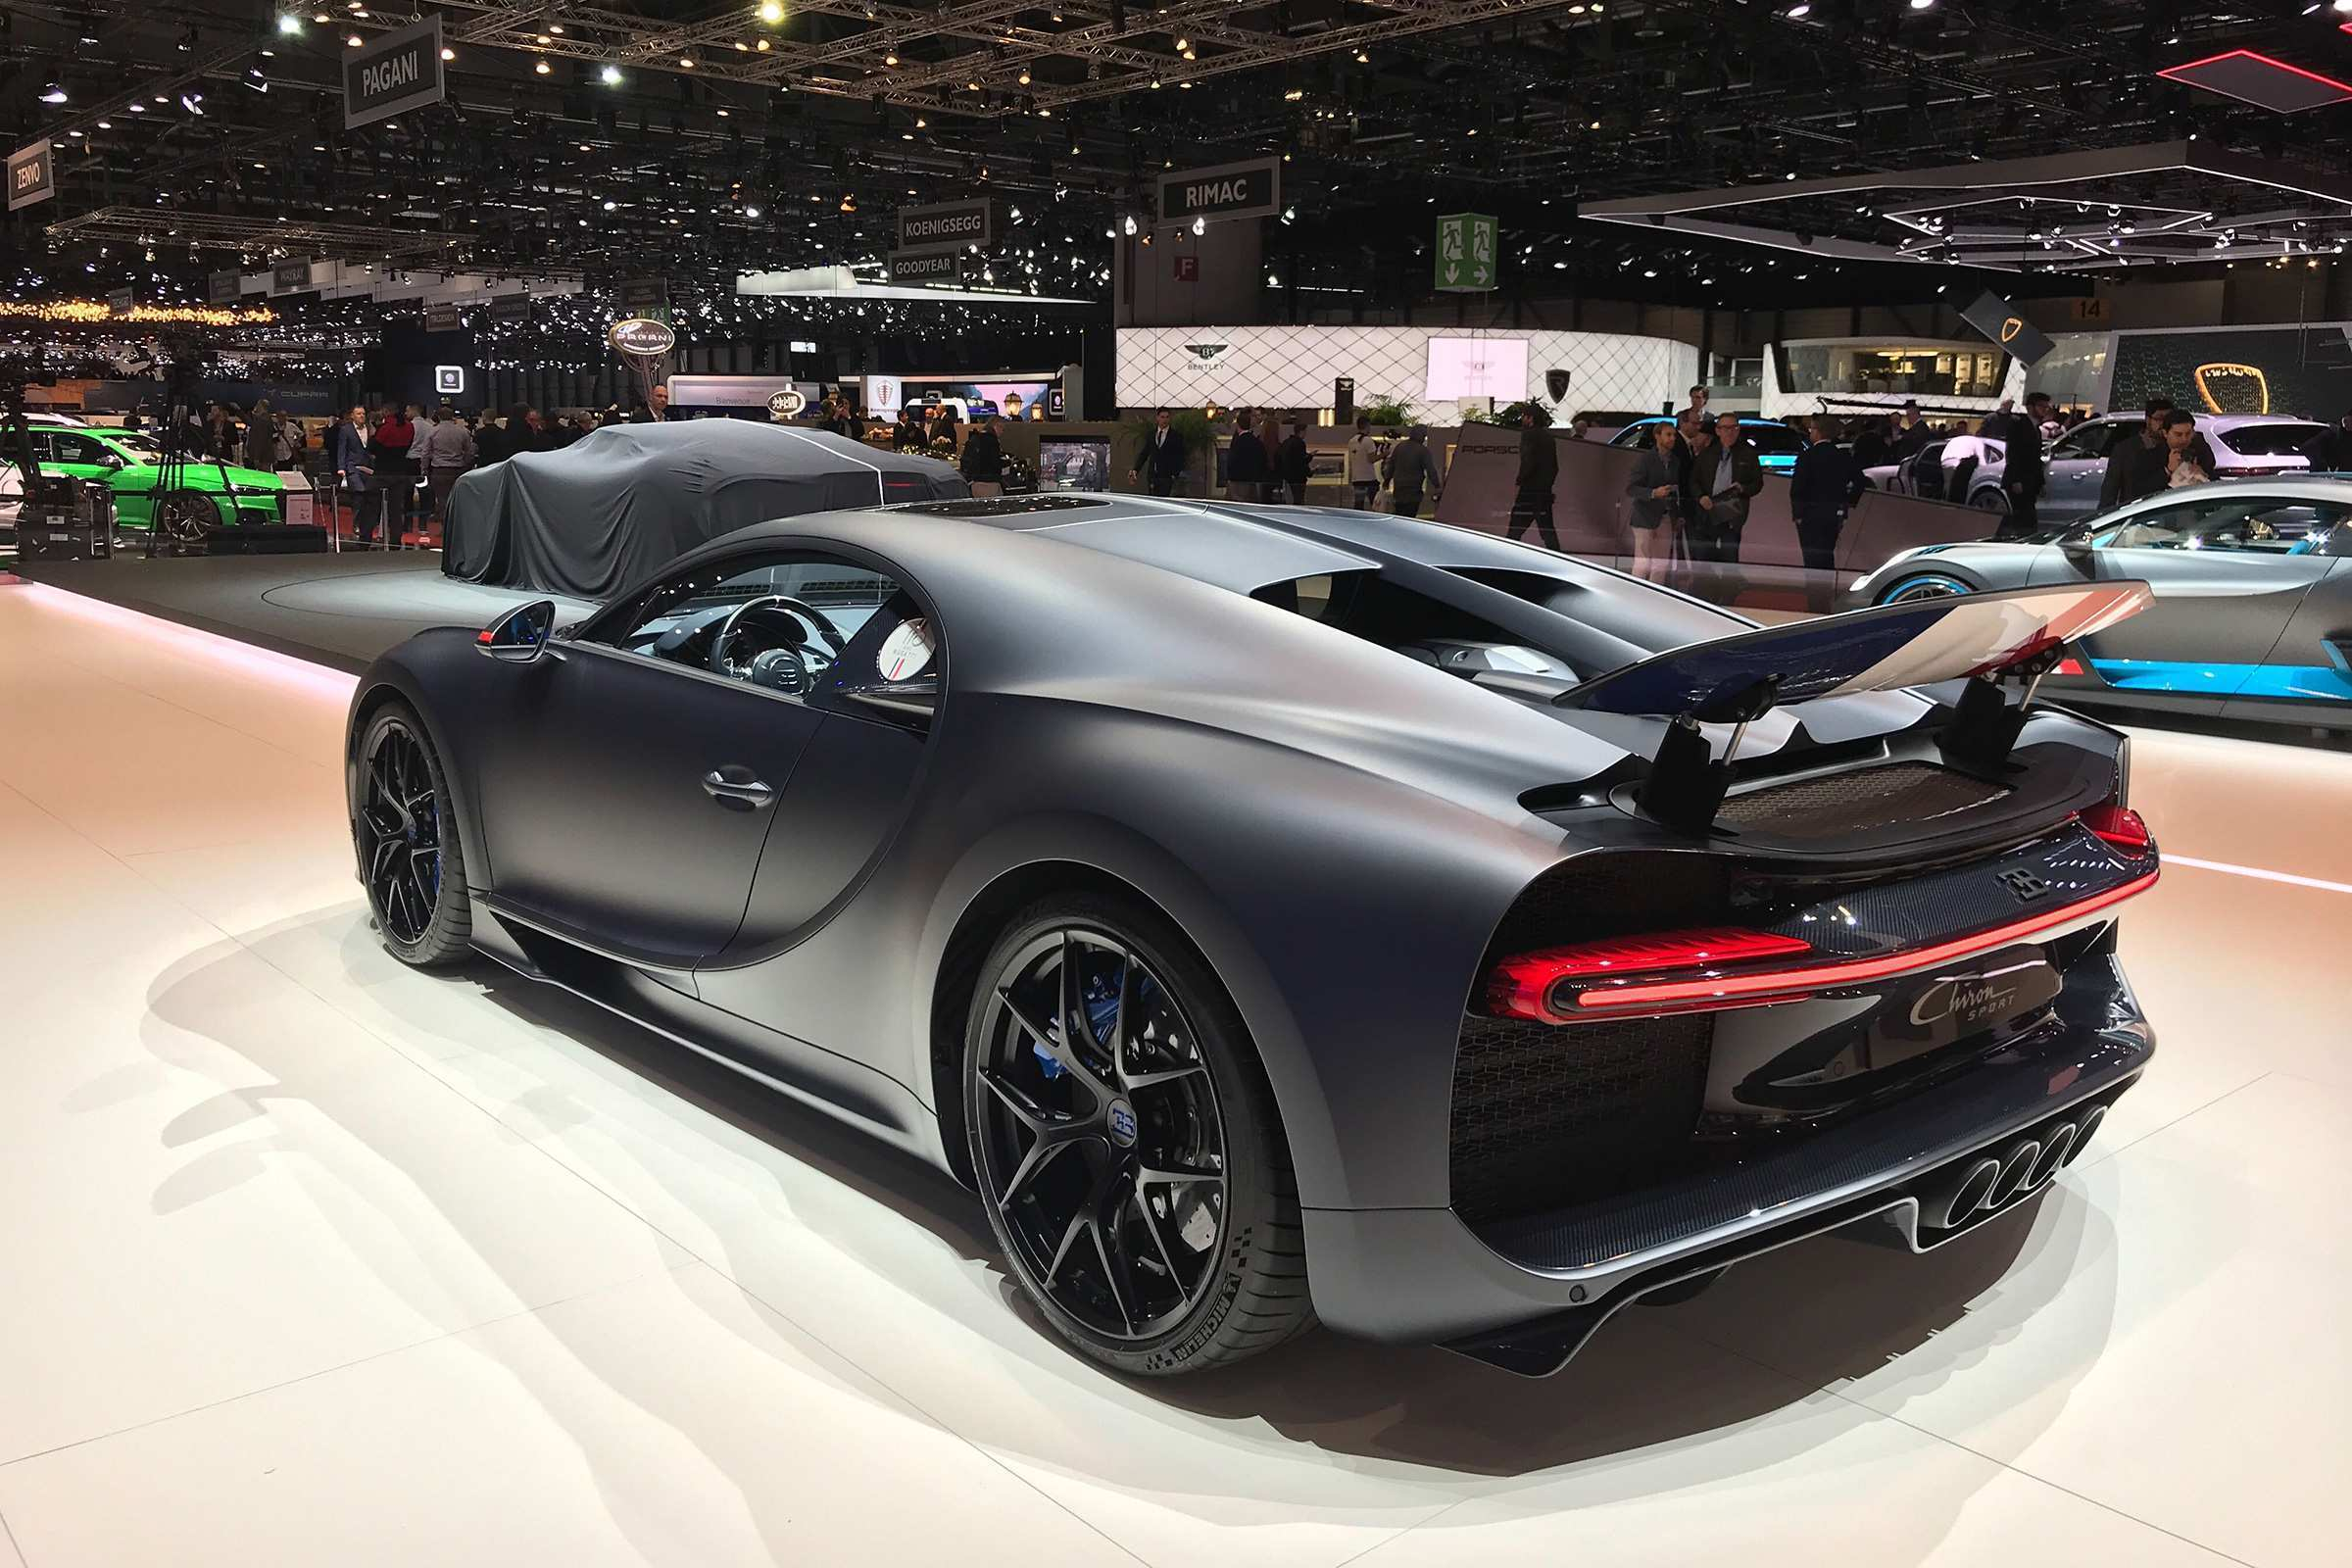 69 All New 2019 Bugatti For Sale History for 2019 Bugatti For Sale